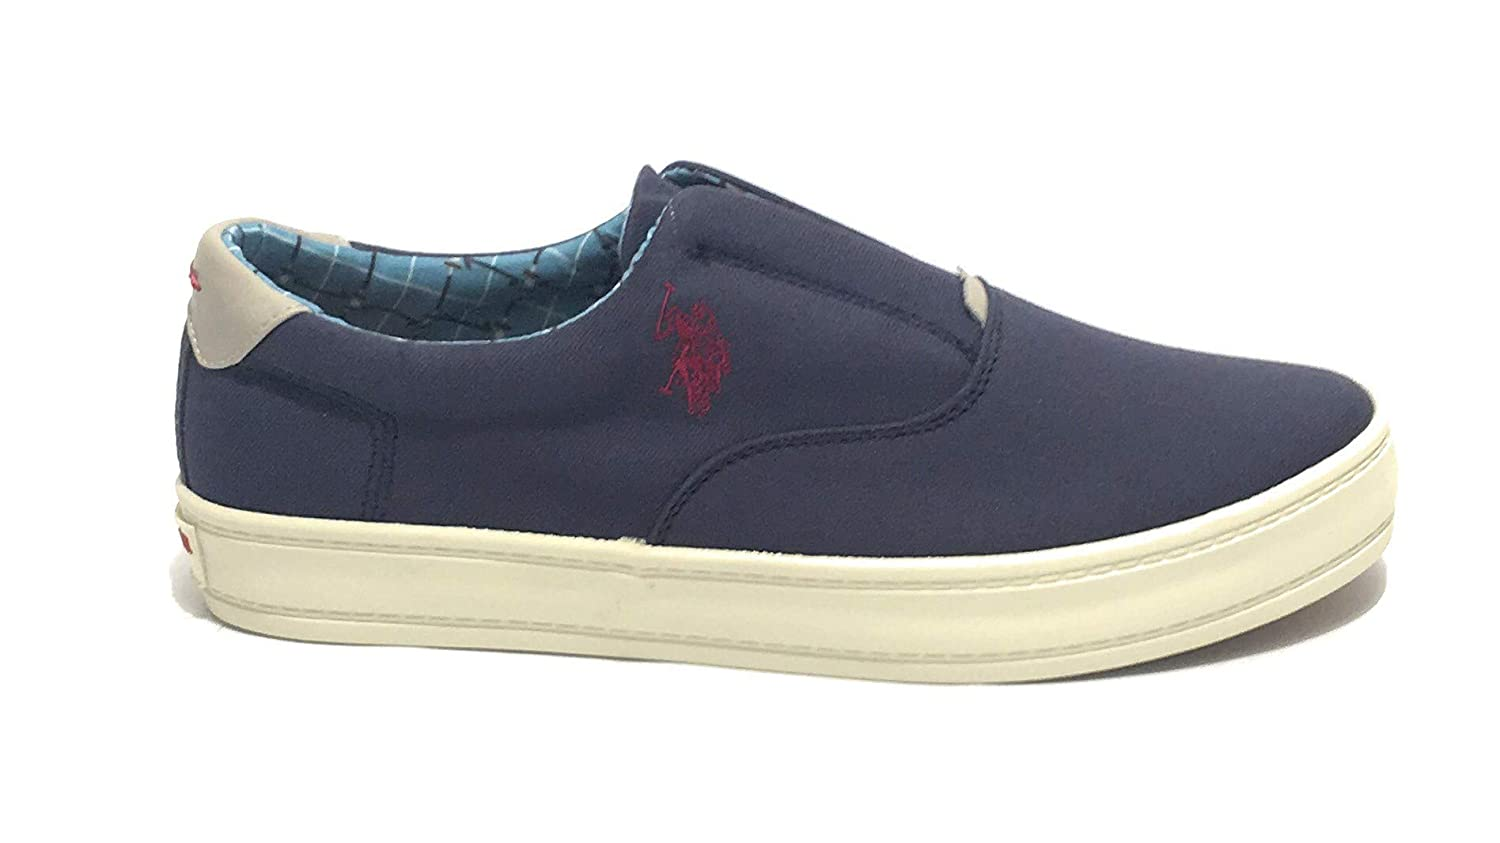 Dark Blau U.S. Polo Assn. 4018S9 C1 Herren Slipper